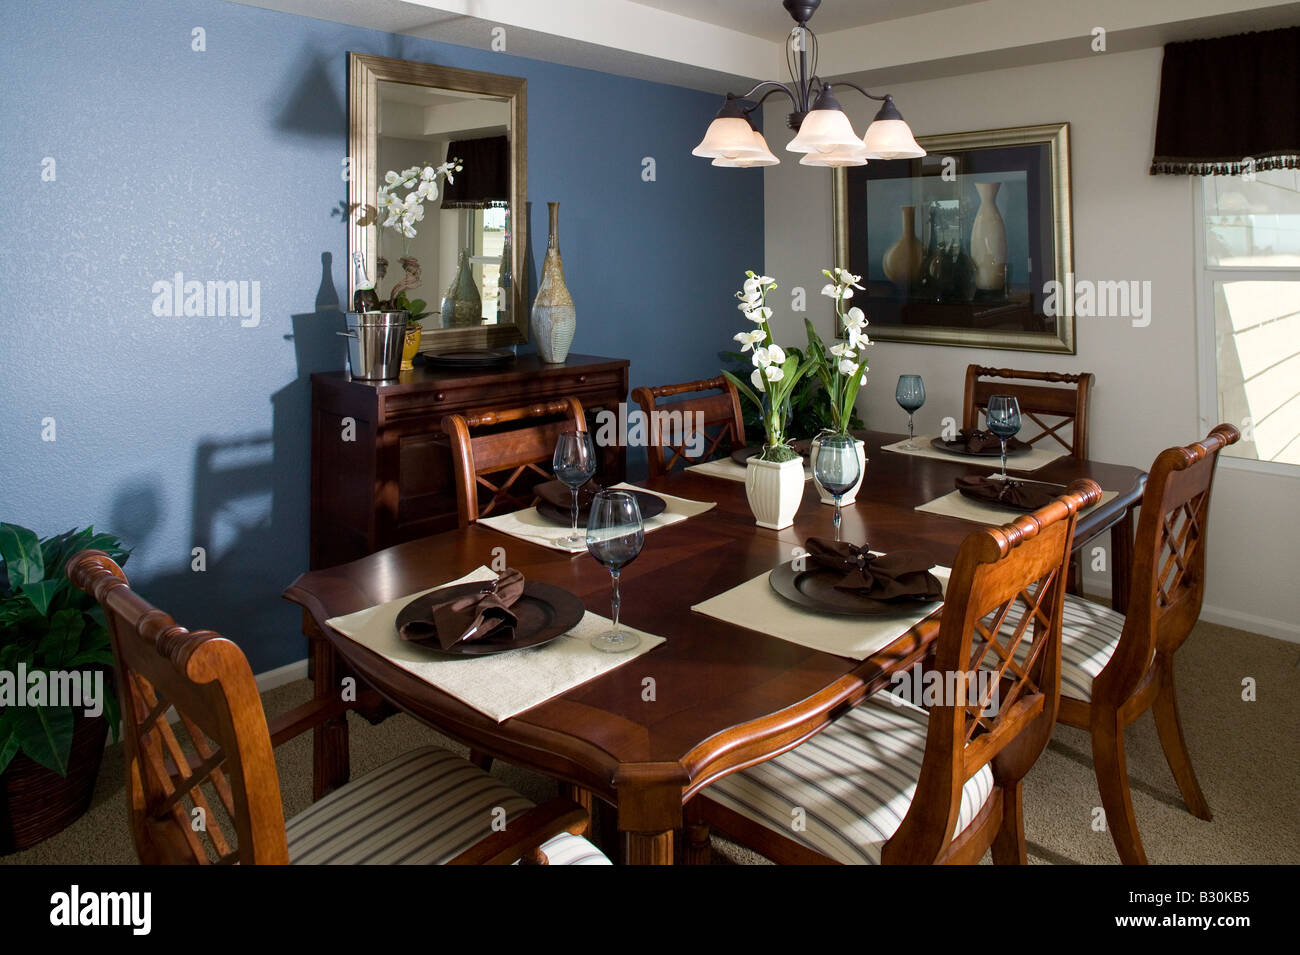 Middle Class Single Family Home Interior Dining Room Table And Chairs  Nobody, Denver, Colorado